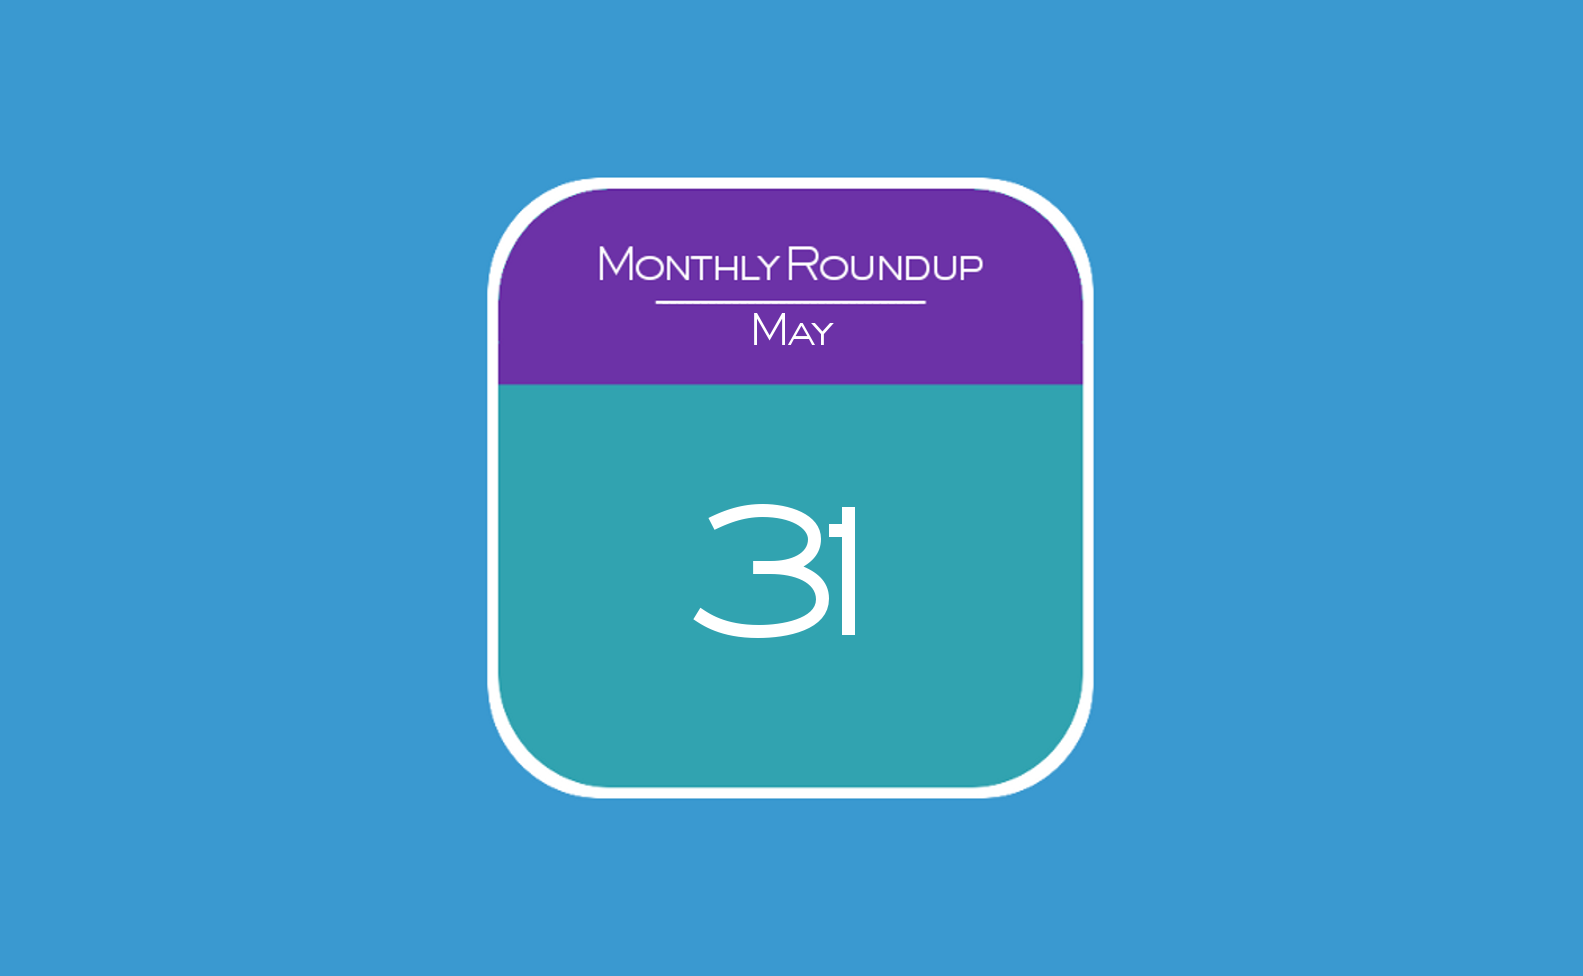 31st May 2015 - Monthly Roundup